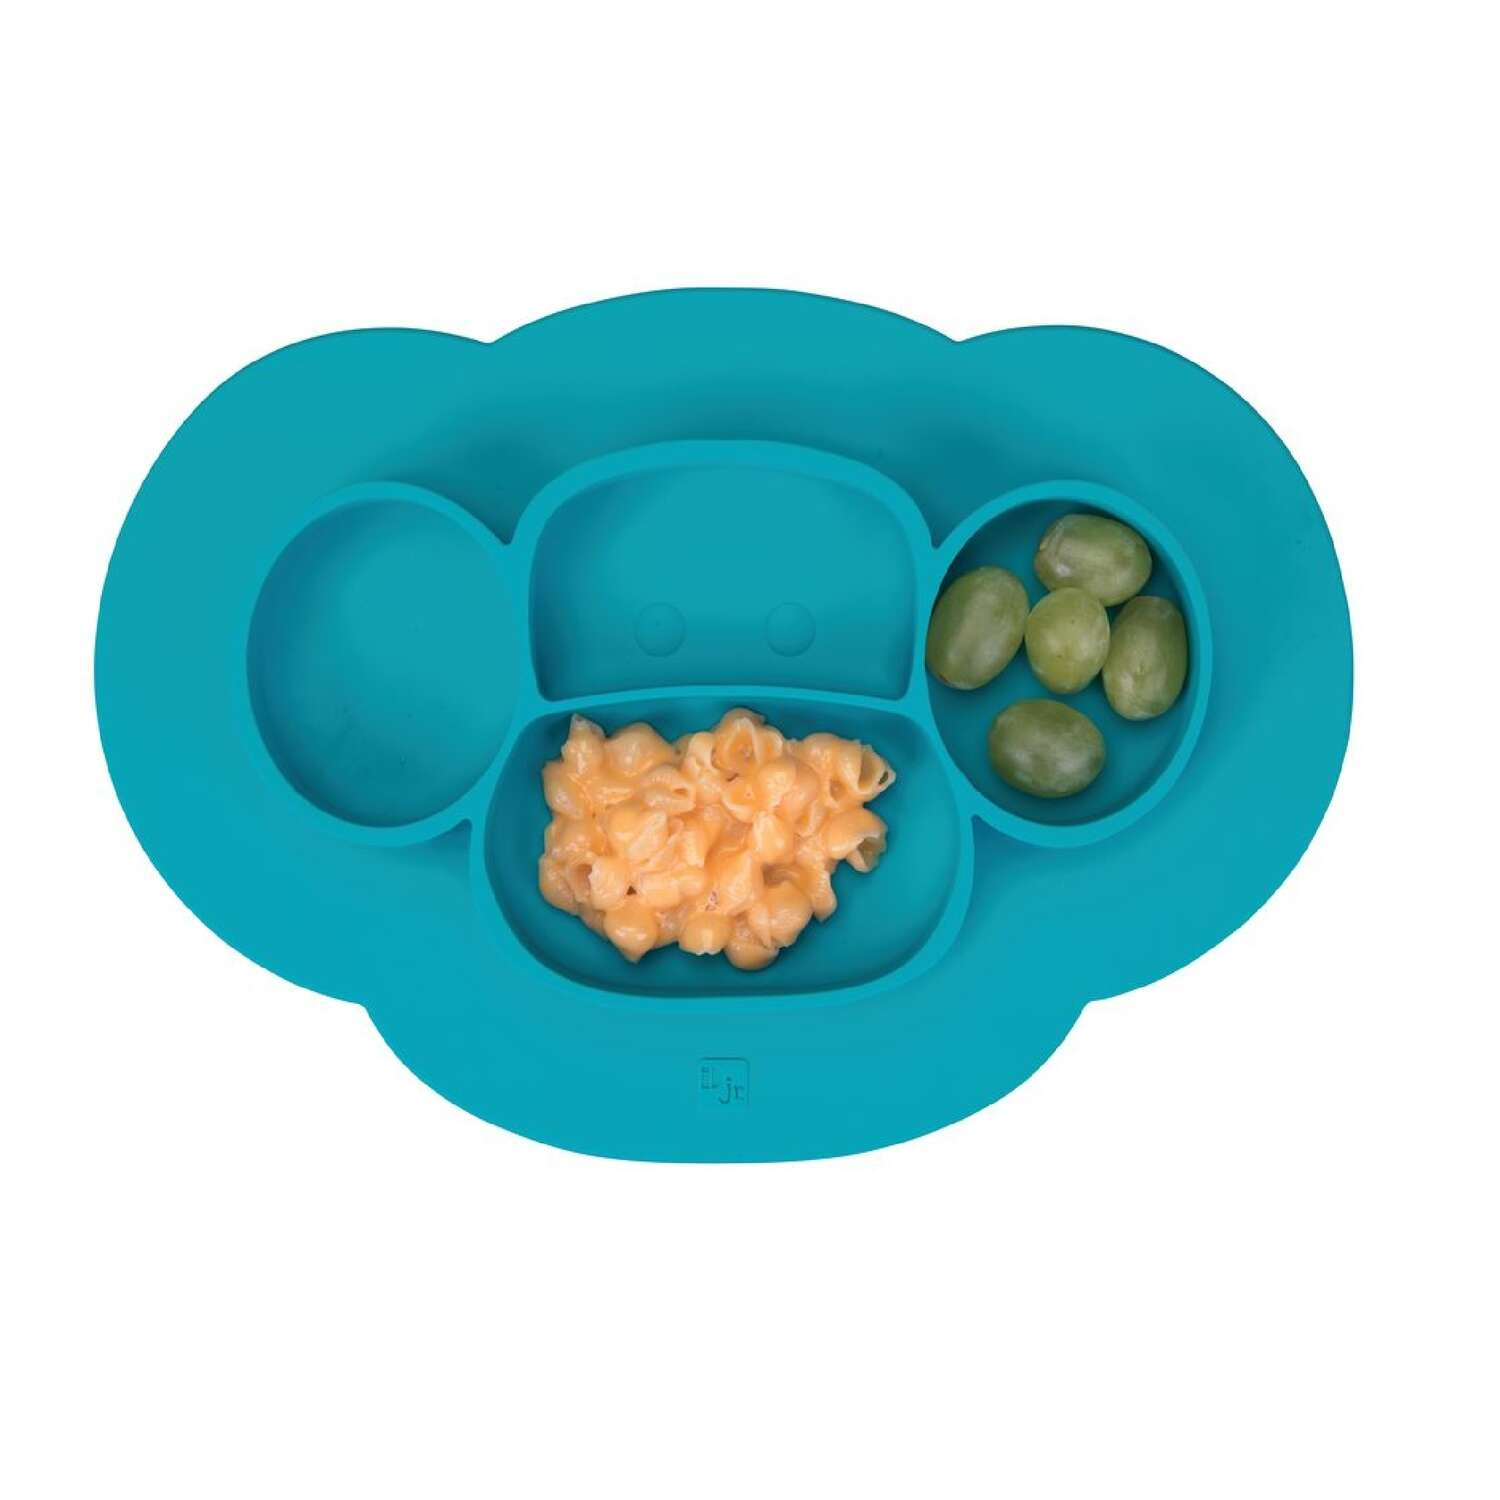 InterDesign  Blue  Silicone  Kids  Divided Plate  1 pk